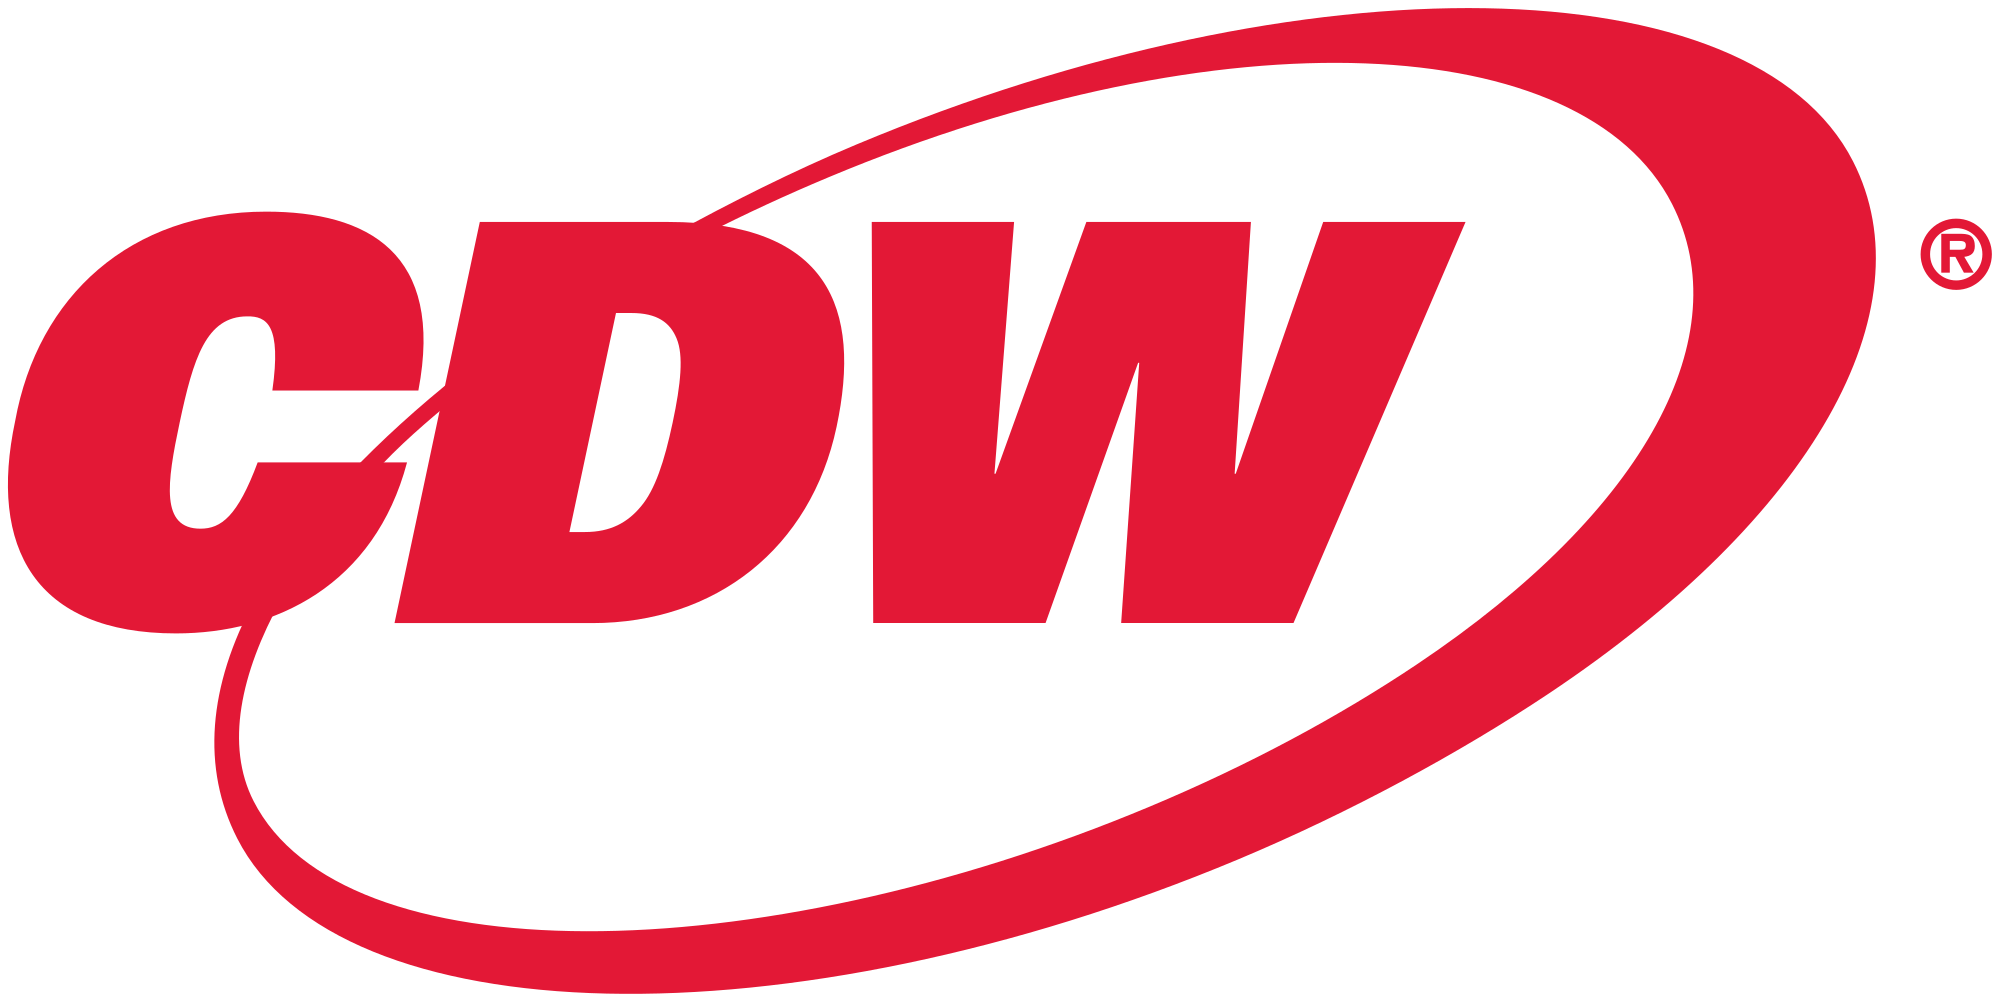 CDW Ltd. - Partner Logo.png